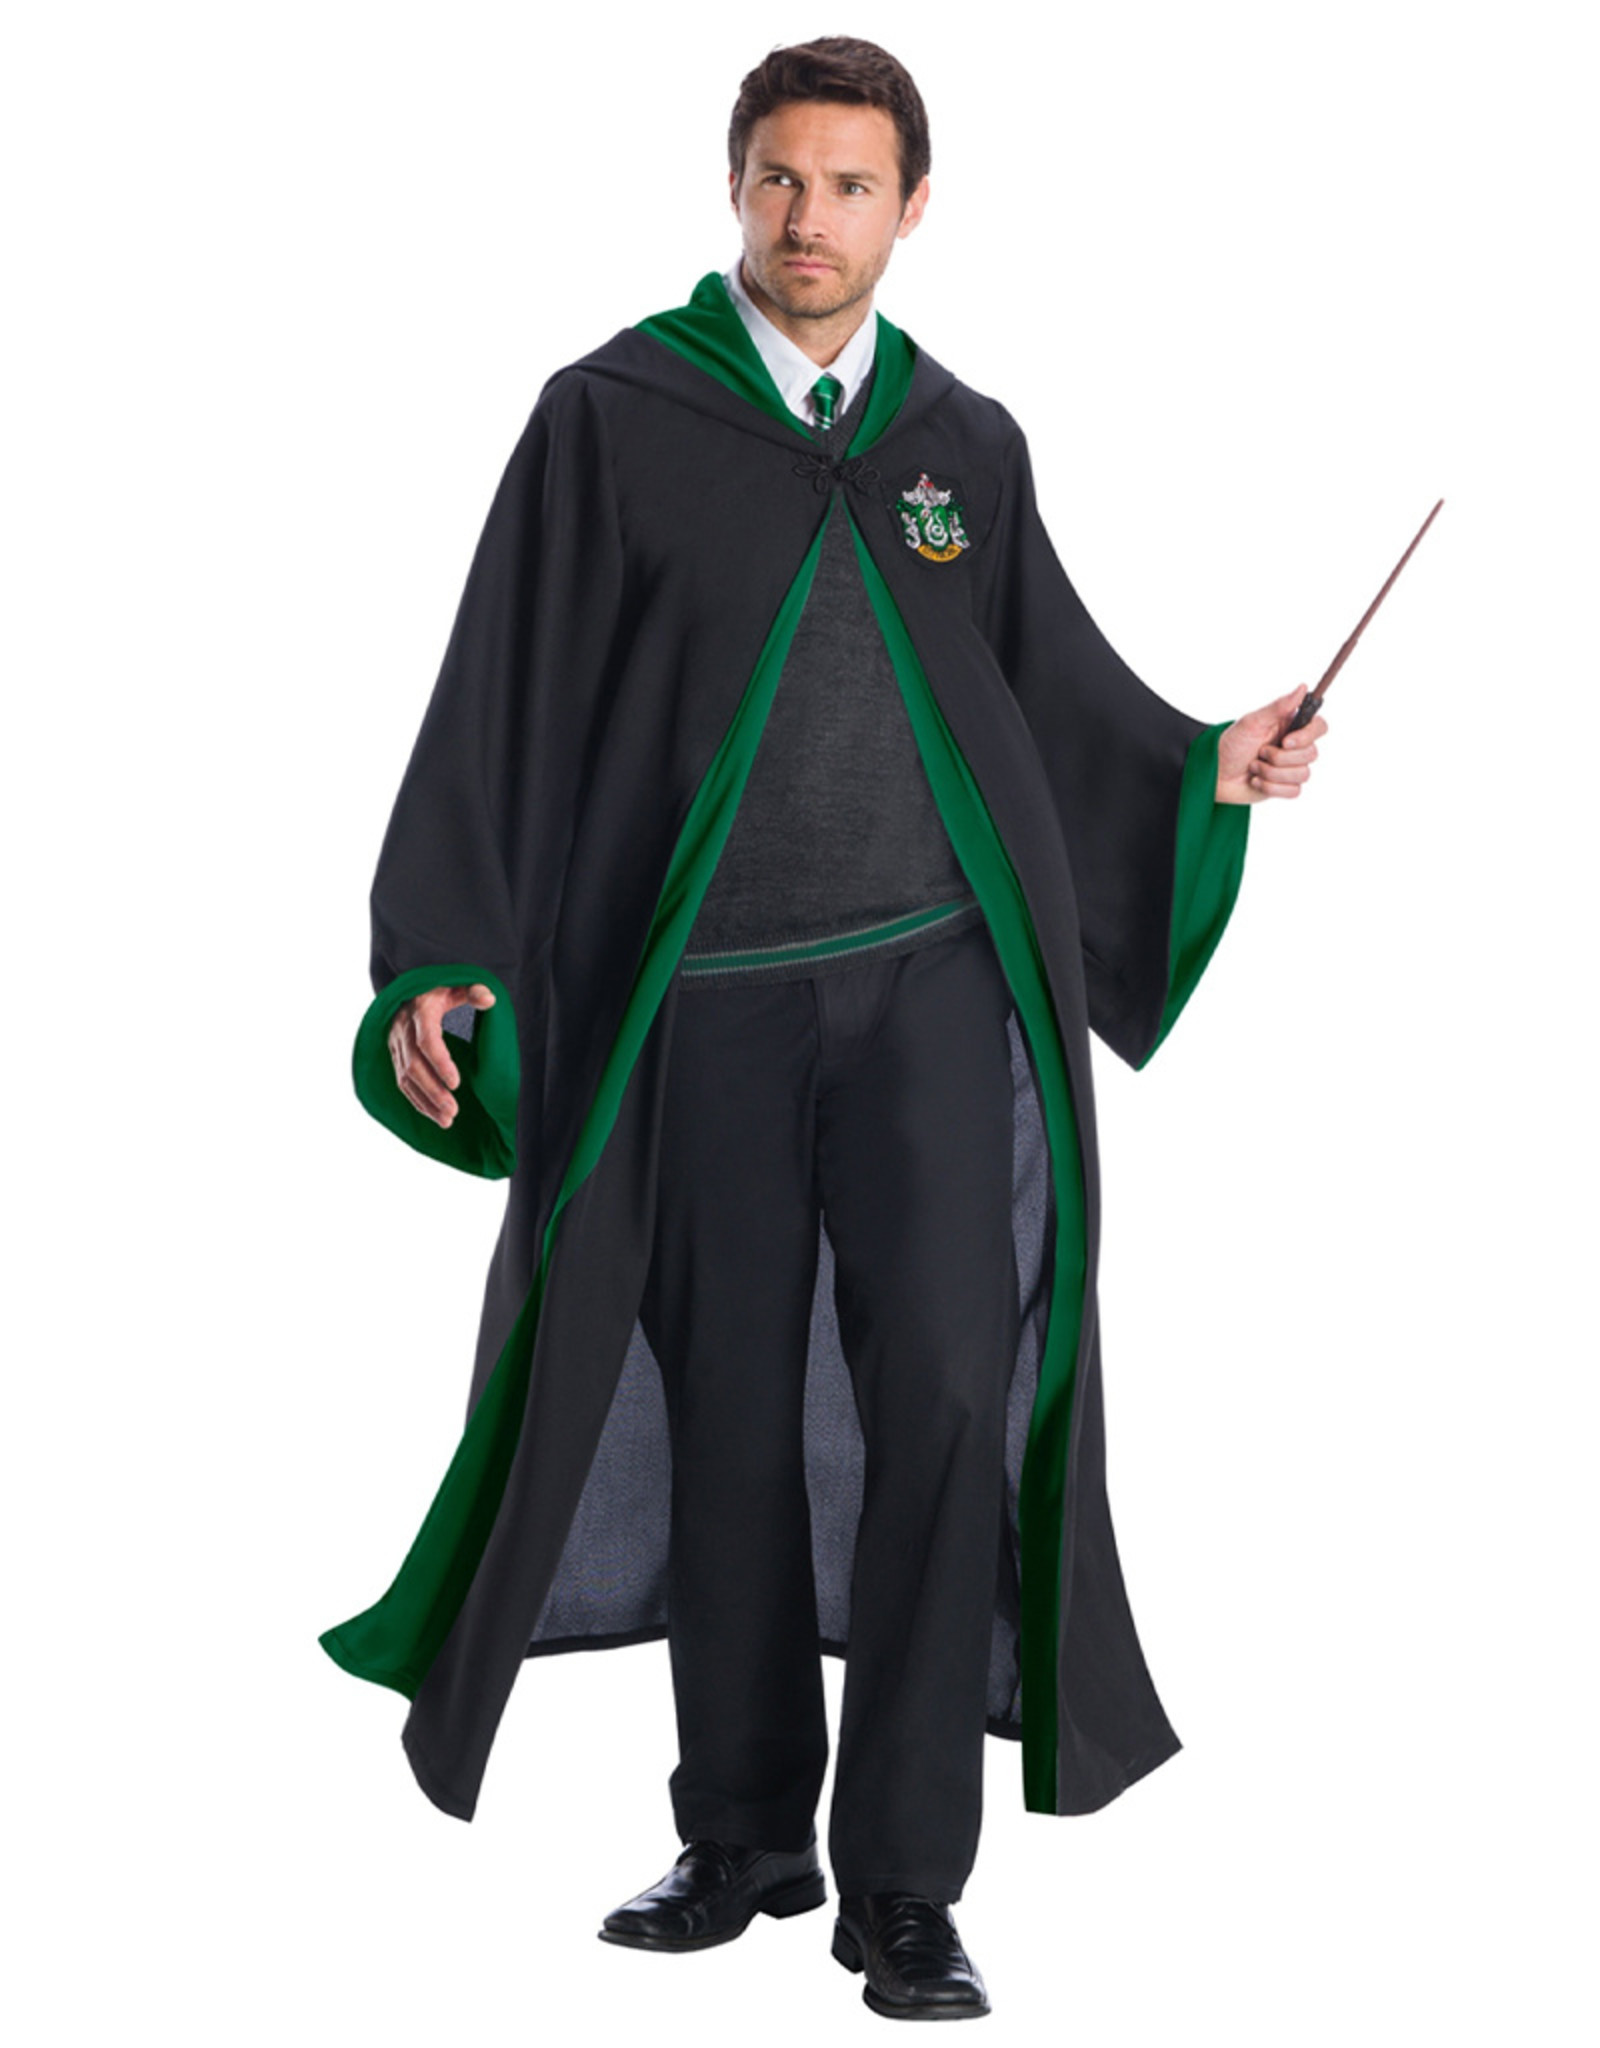 Slytherin Student  Costume - Harry Potter - Adult